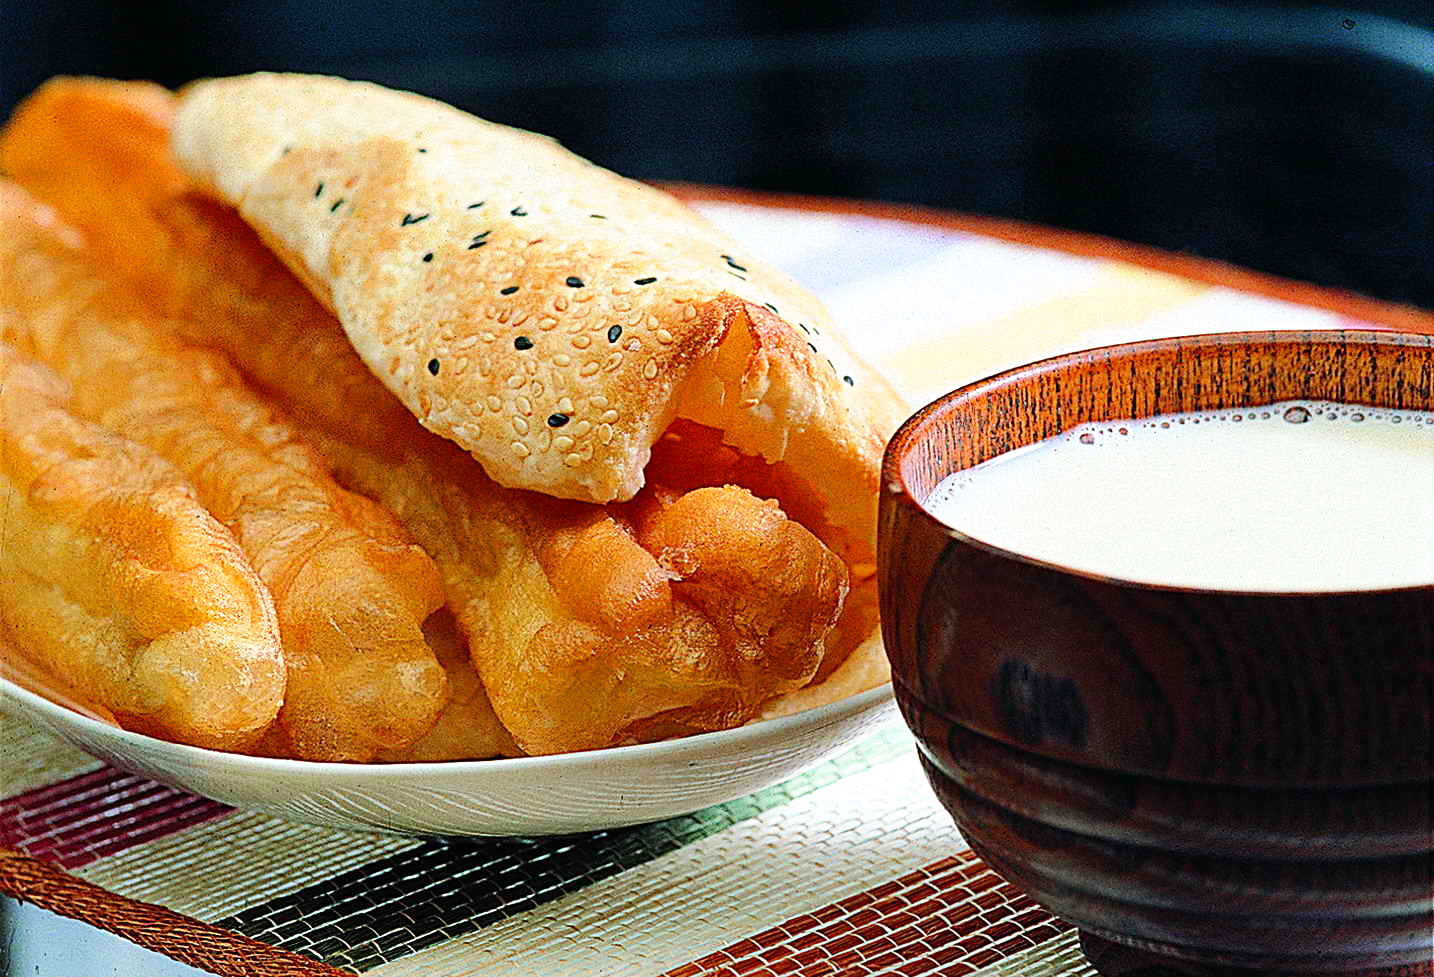 How to make youtiao chinese doughnuts the fried breadsticks recipe how to make youtiao chinese doughnuts the fried breadsticks recipe forumfinder Choice Image